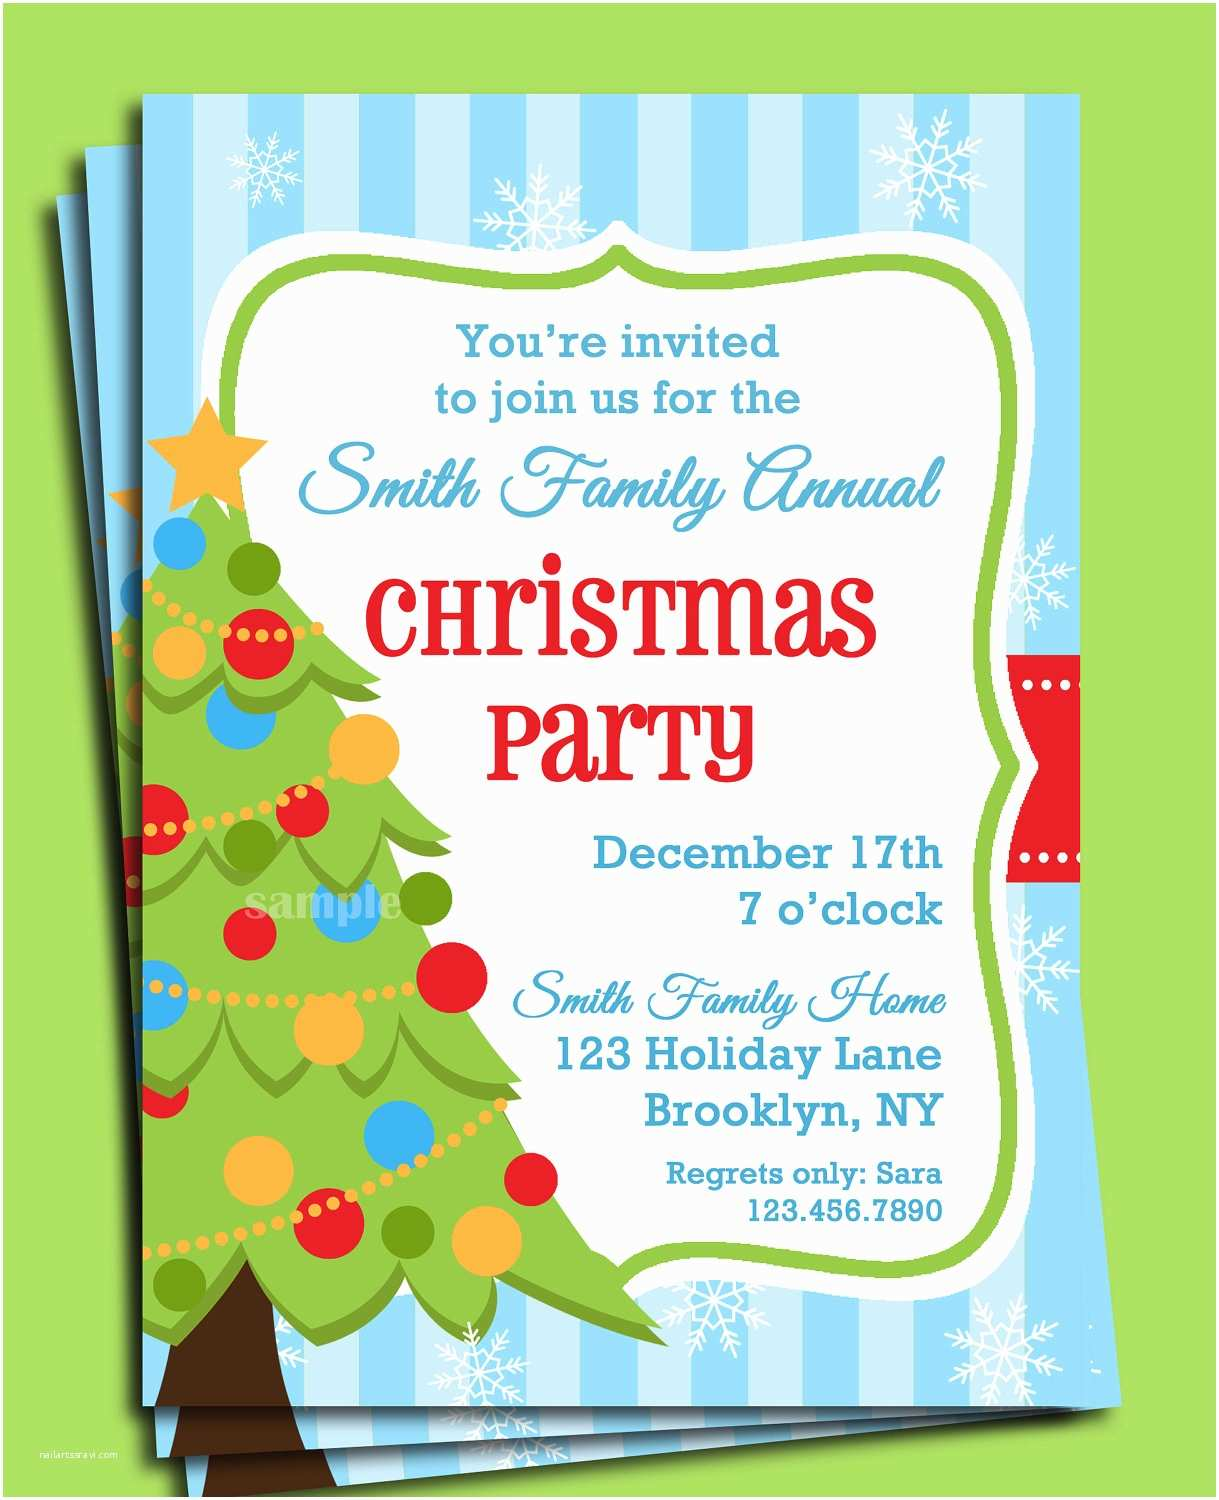 Christmas Party Invitations Christmas Party Invitation Printable Christmas Tree In Snow